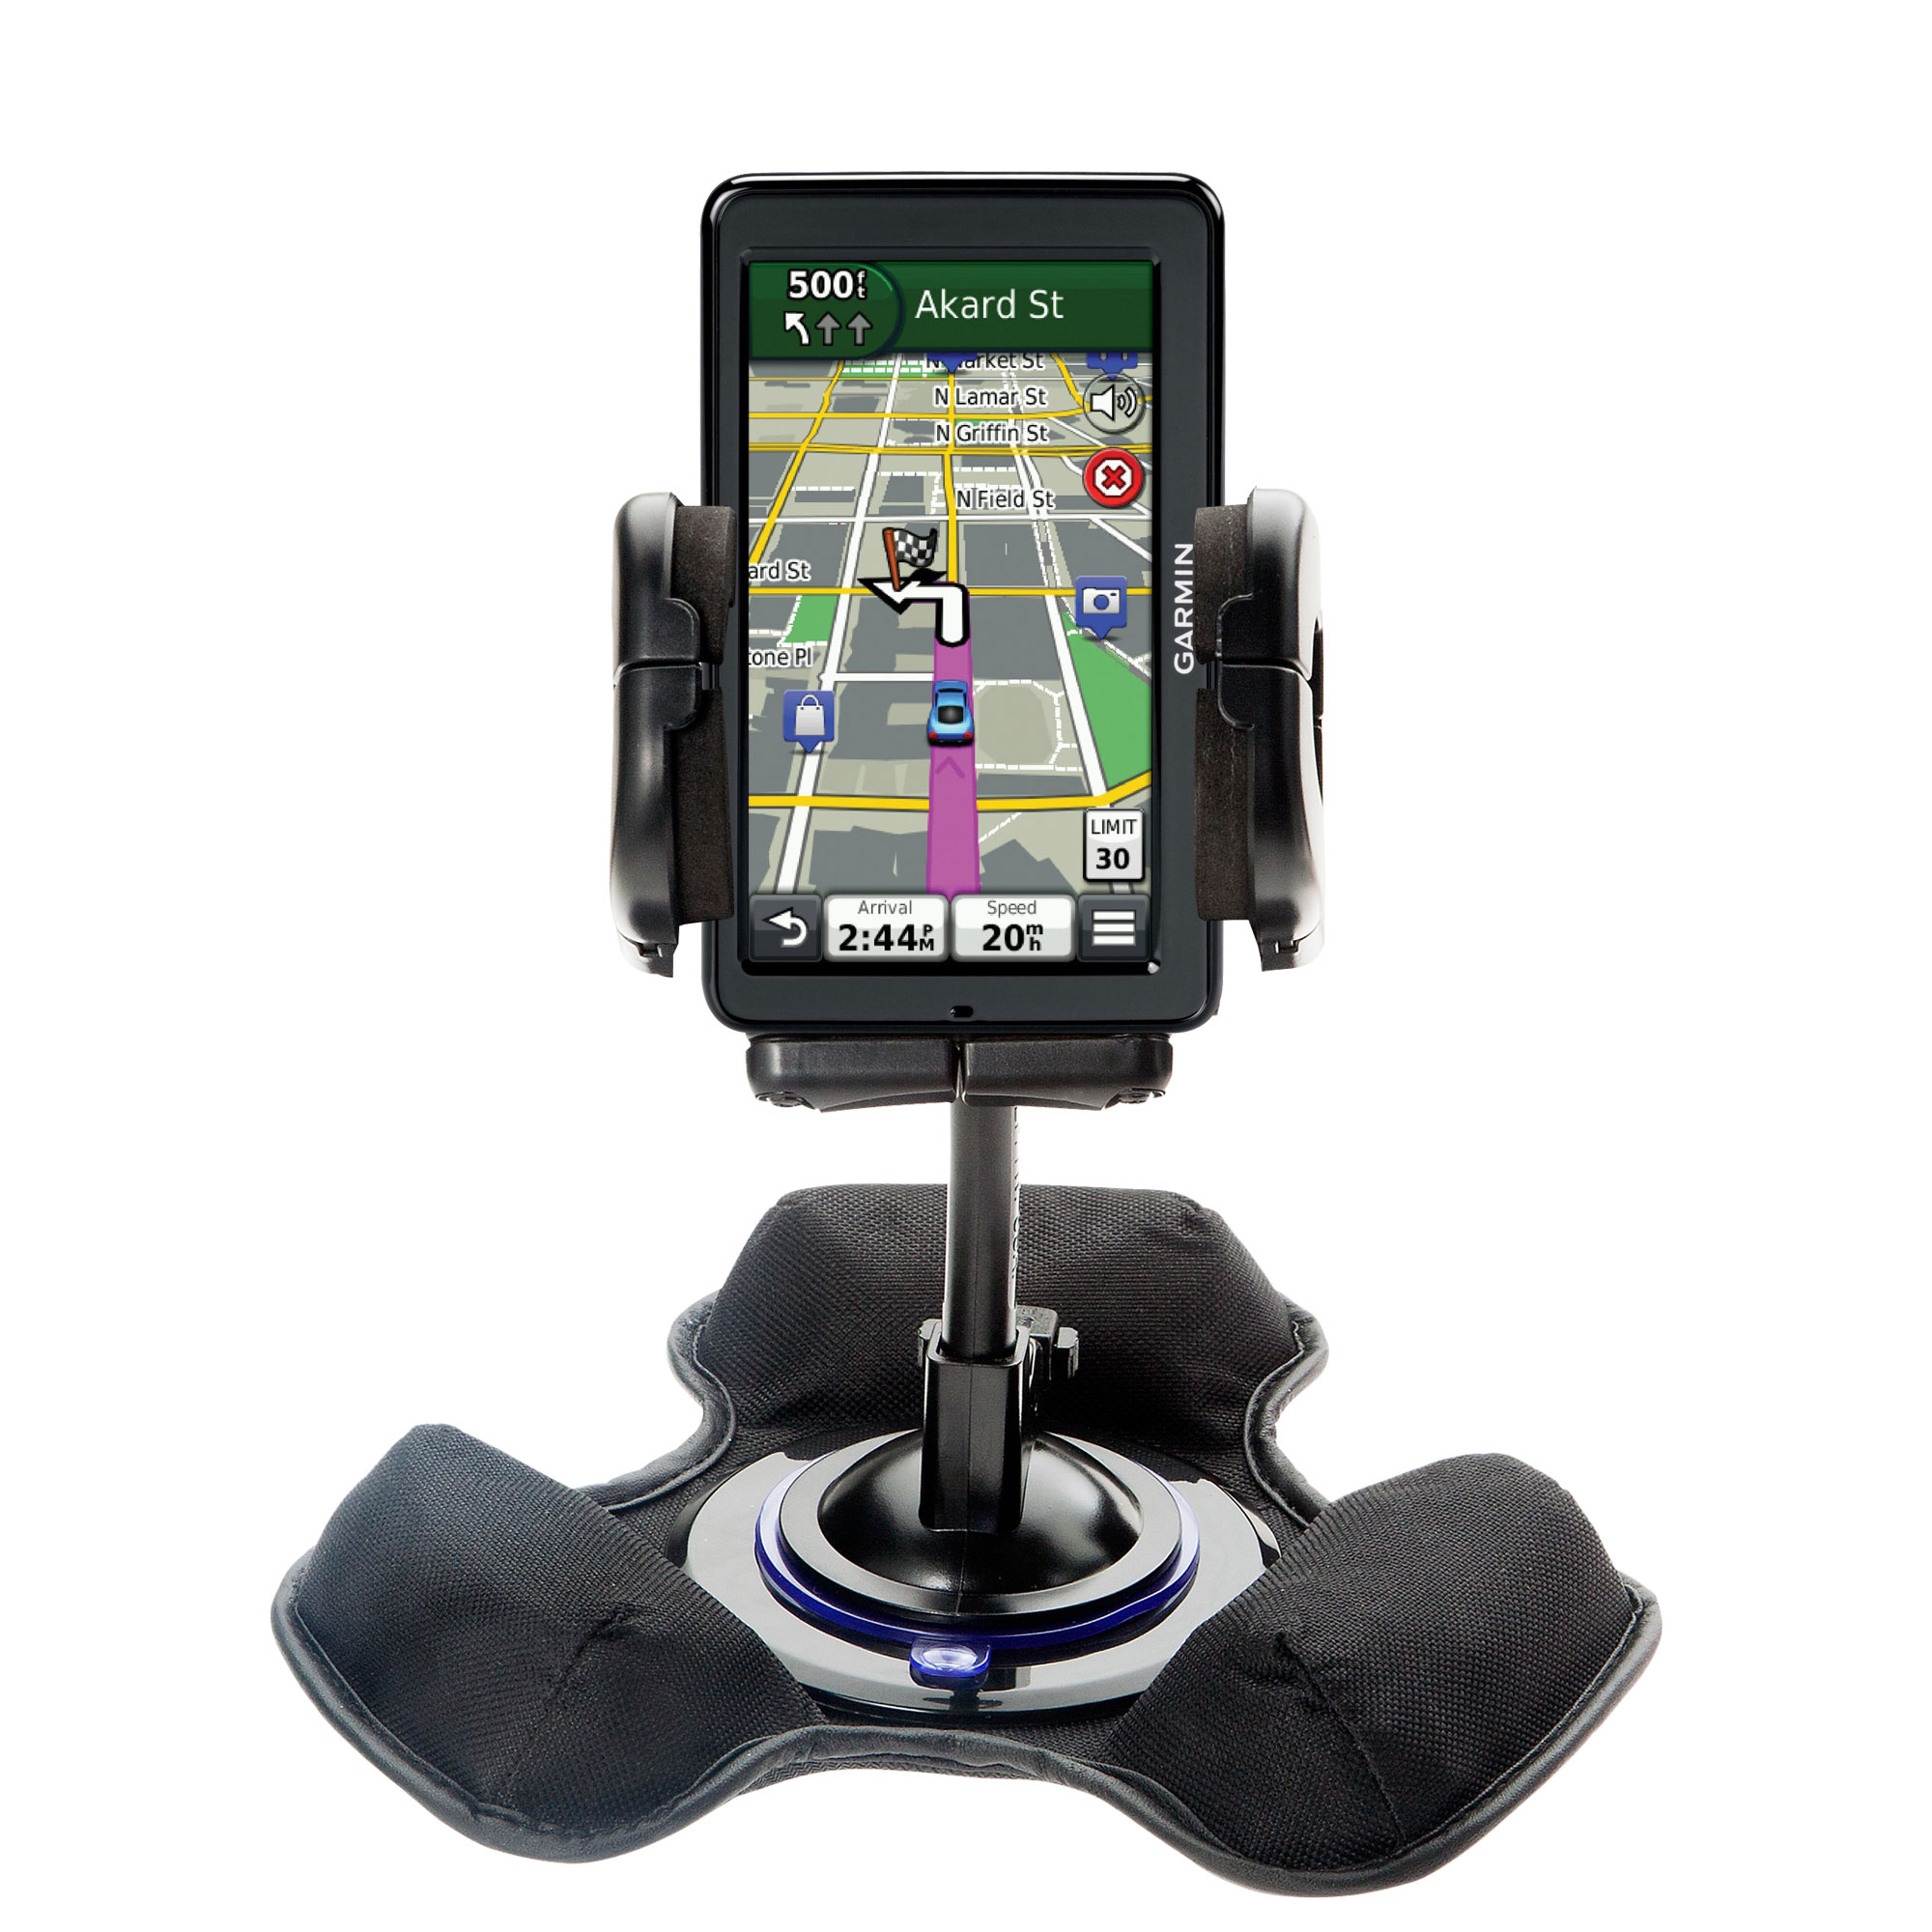 Dash and Windshield Holder compatible with the Garmin Nuvi 2555 2595 LMT